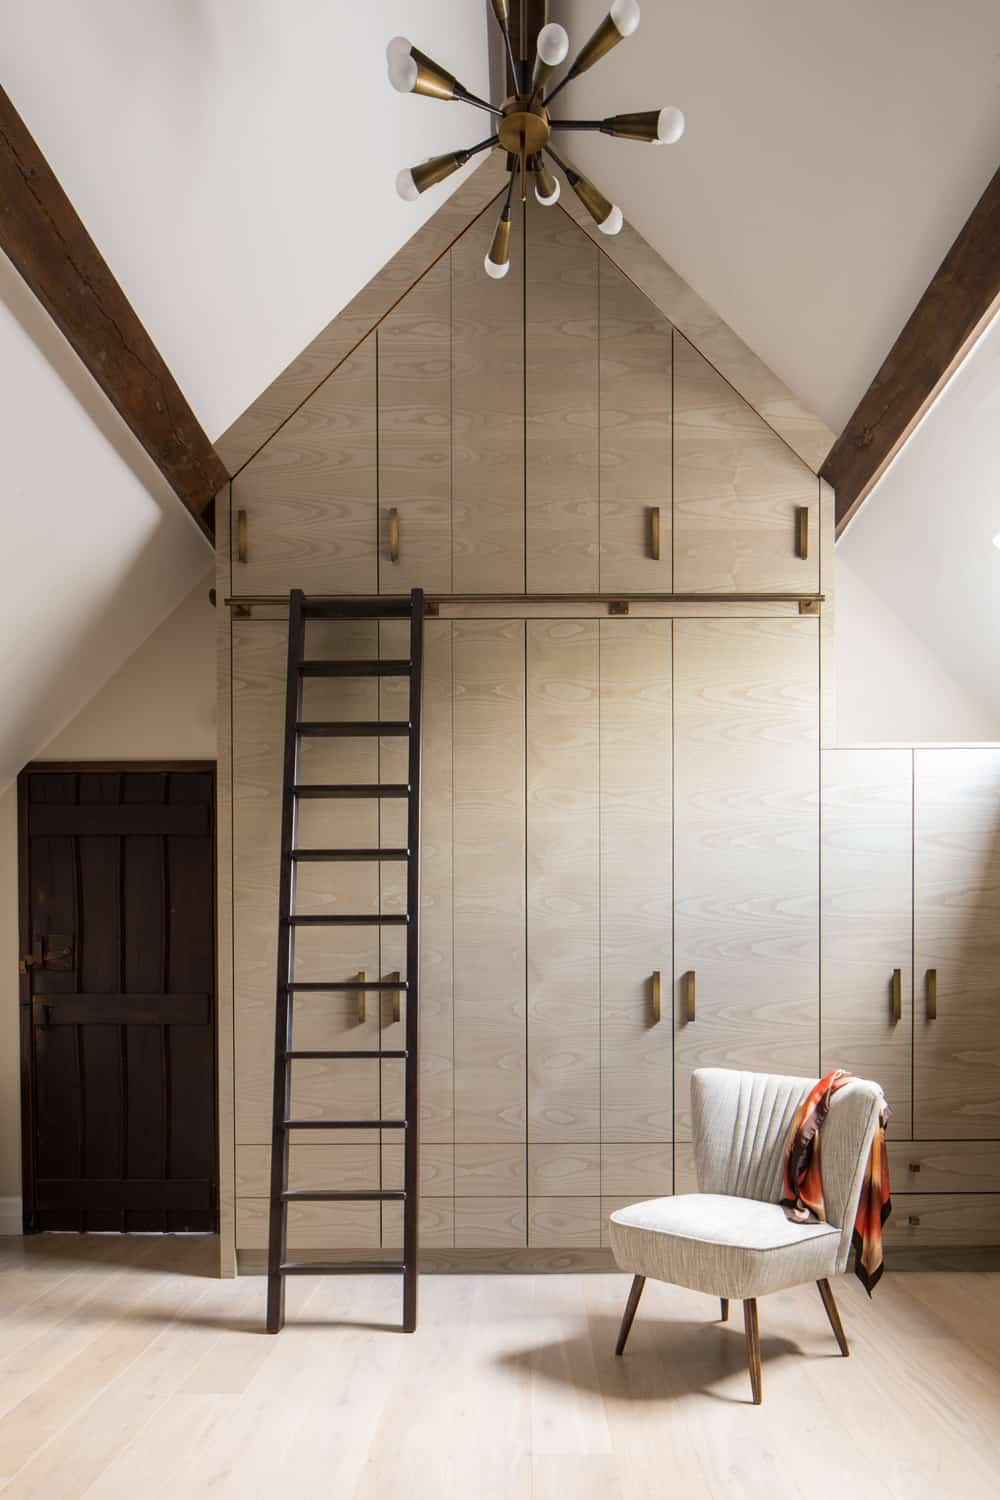 bespoke full-height joinery and storage with metal ladder by roselind wilson design